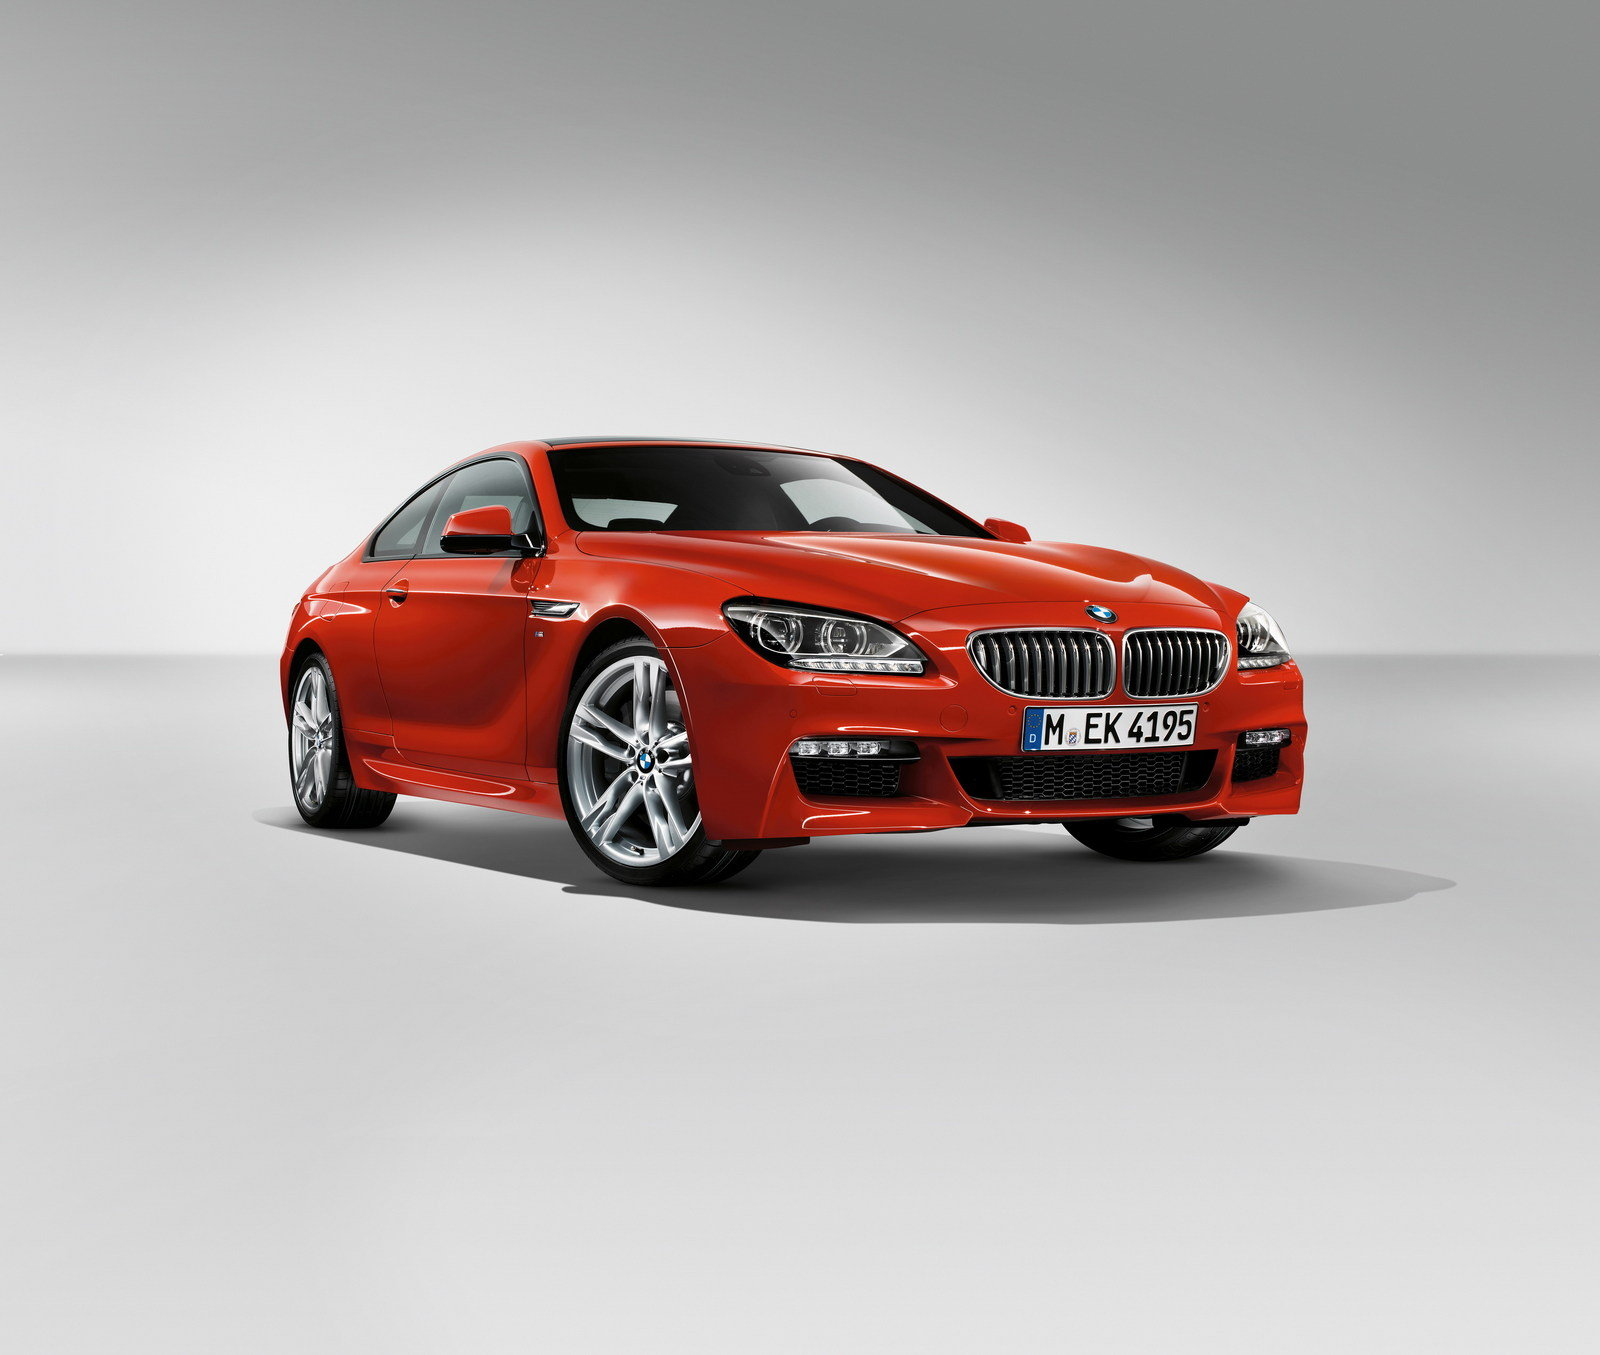 2013 BMW 6-Series M Sport Edition